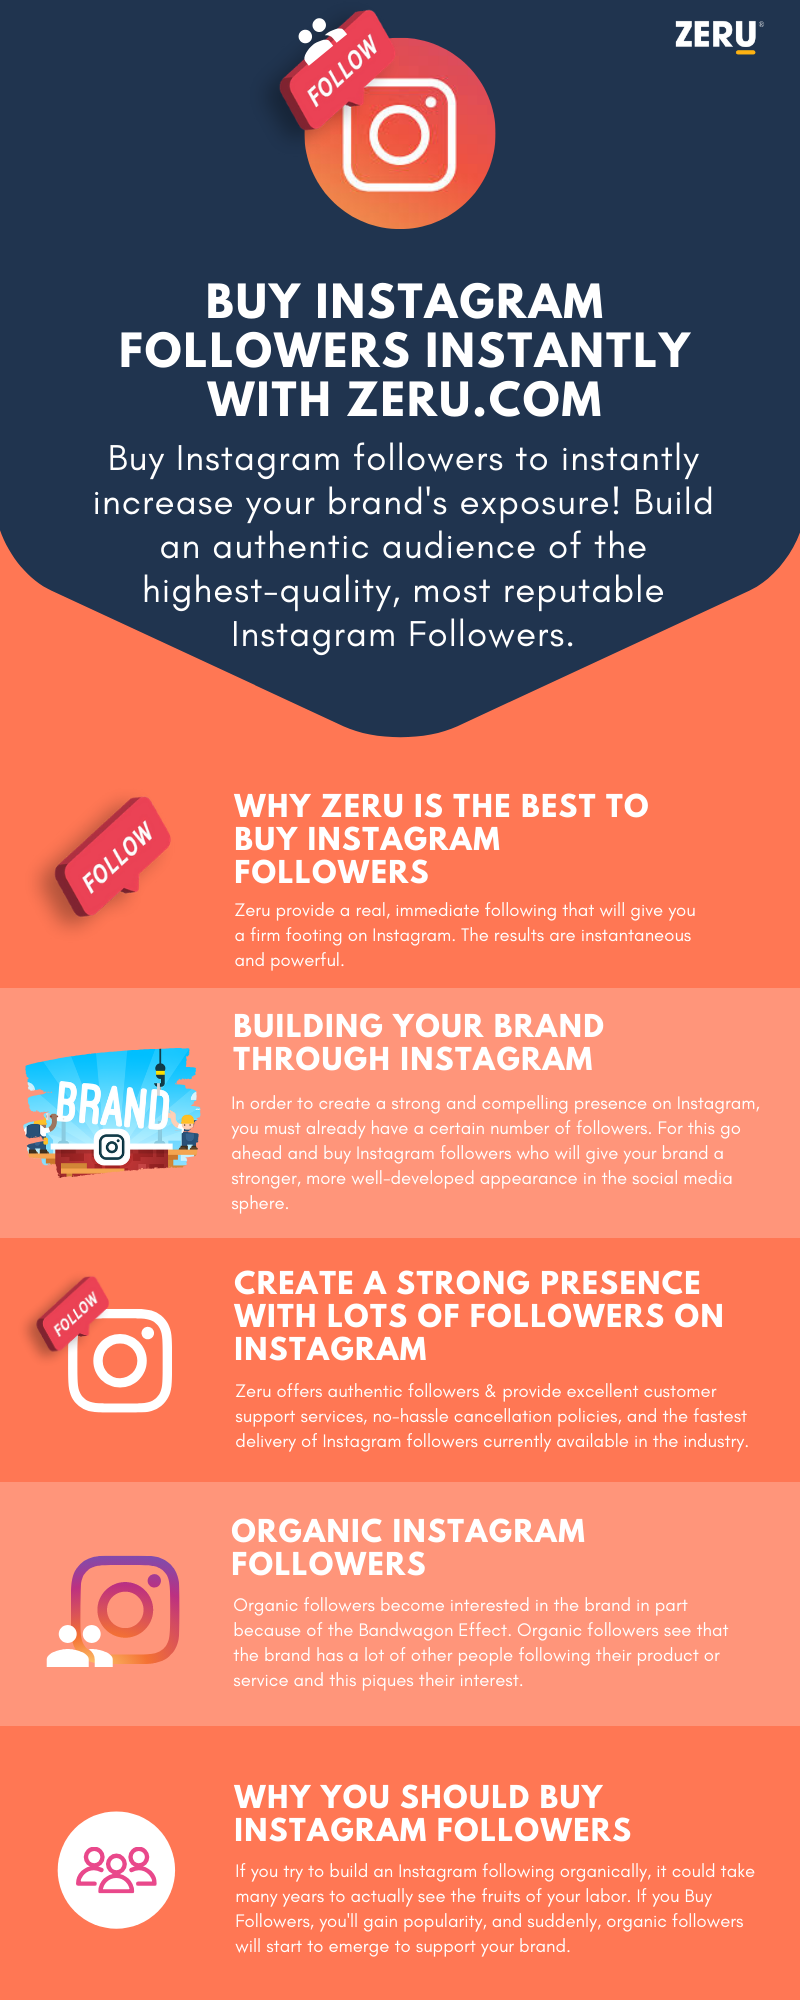 Buy Instagram followers instantly with Zeru.com #infographic # Social Media